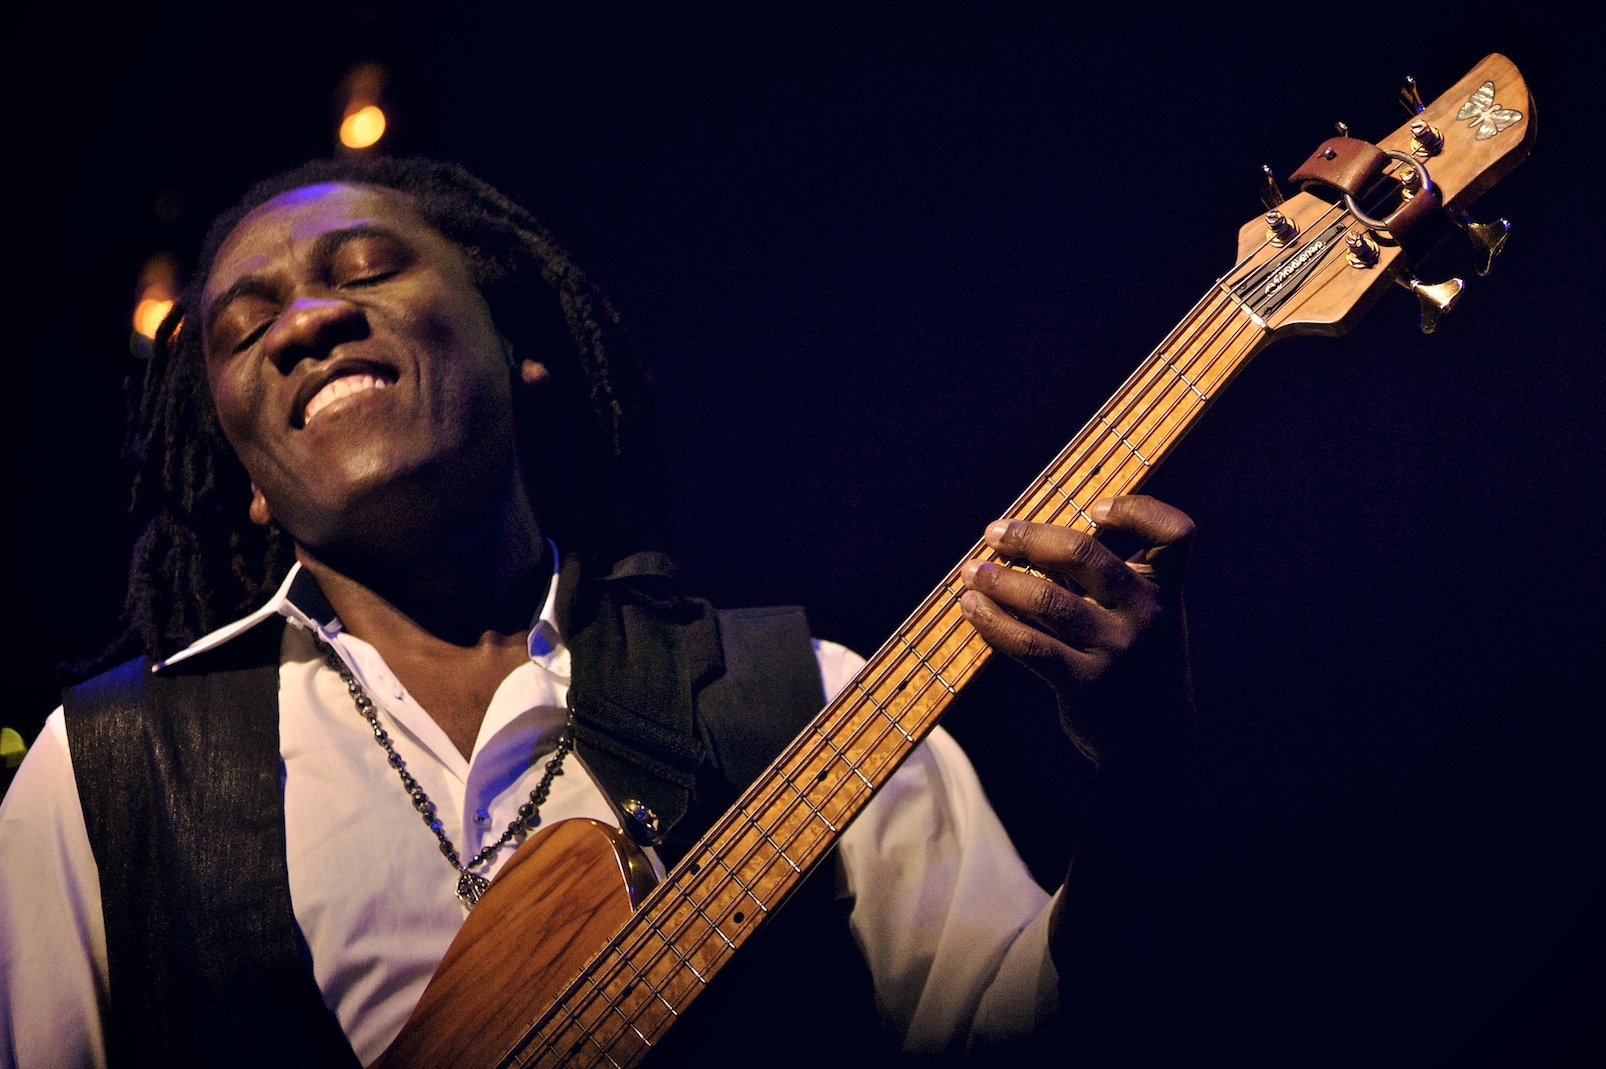 RICHARD BONA & MANDEKAN CUBANO'S NEW ALBUM HERITAGE EXPLORES THE RICH CONNECTIONS BETWEEN AFRICAN AND CUBAN MUSIC